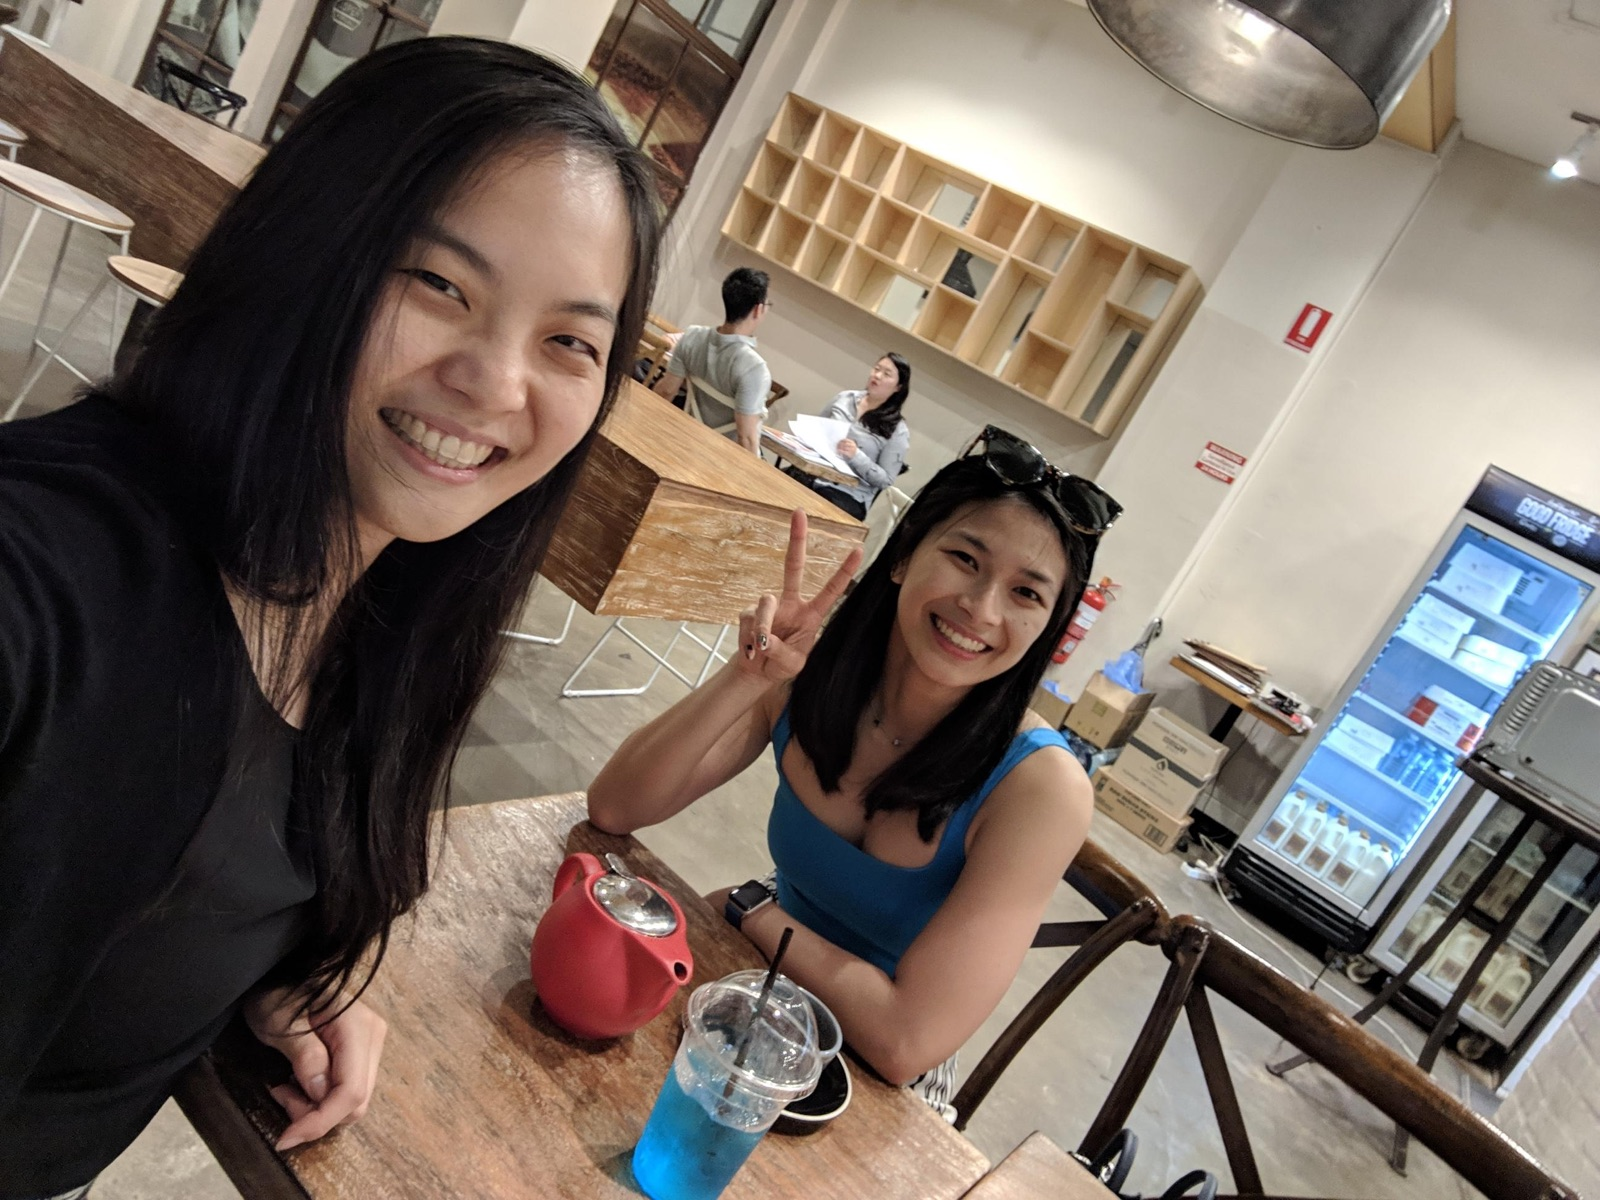 A selfie with two women in it; both are smiling. The woman taking the selfie is wearing black and the other woman is wearing blue. They are seated in a cafe and on the table is a pot of tea and a plastic cup of blue lemonade.